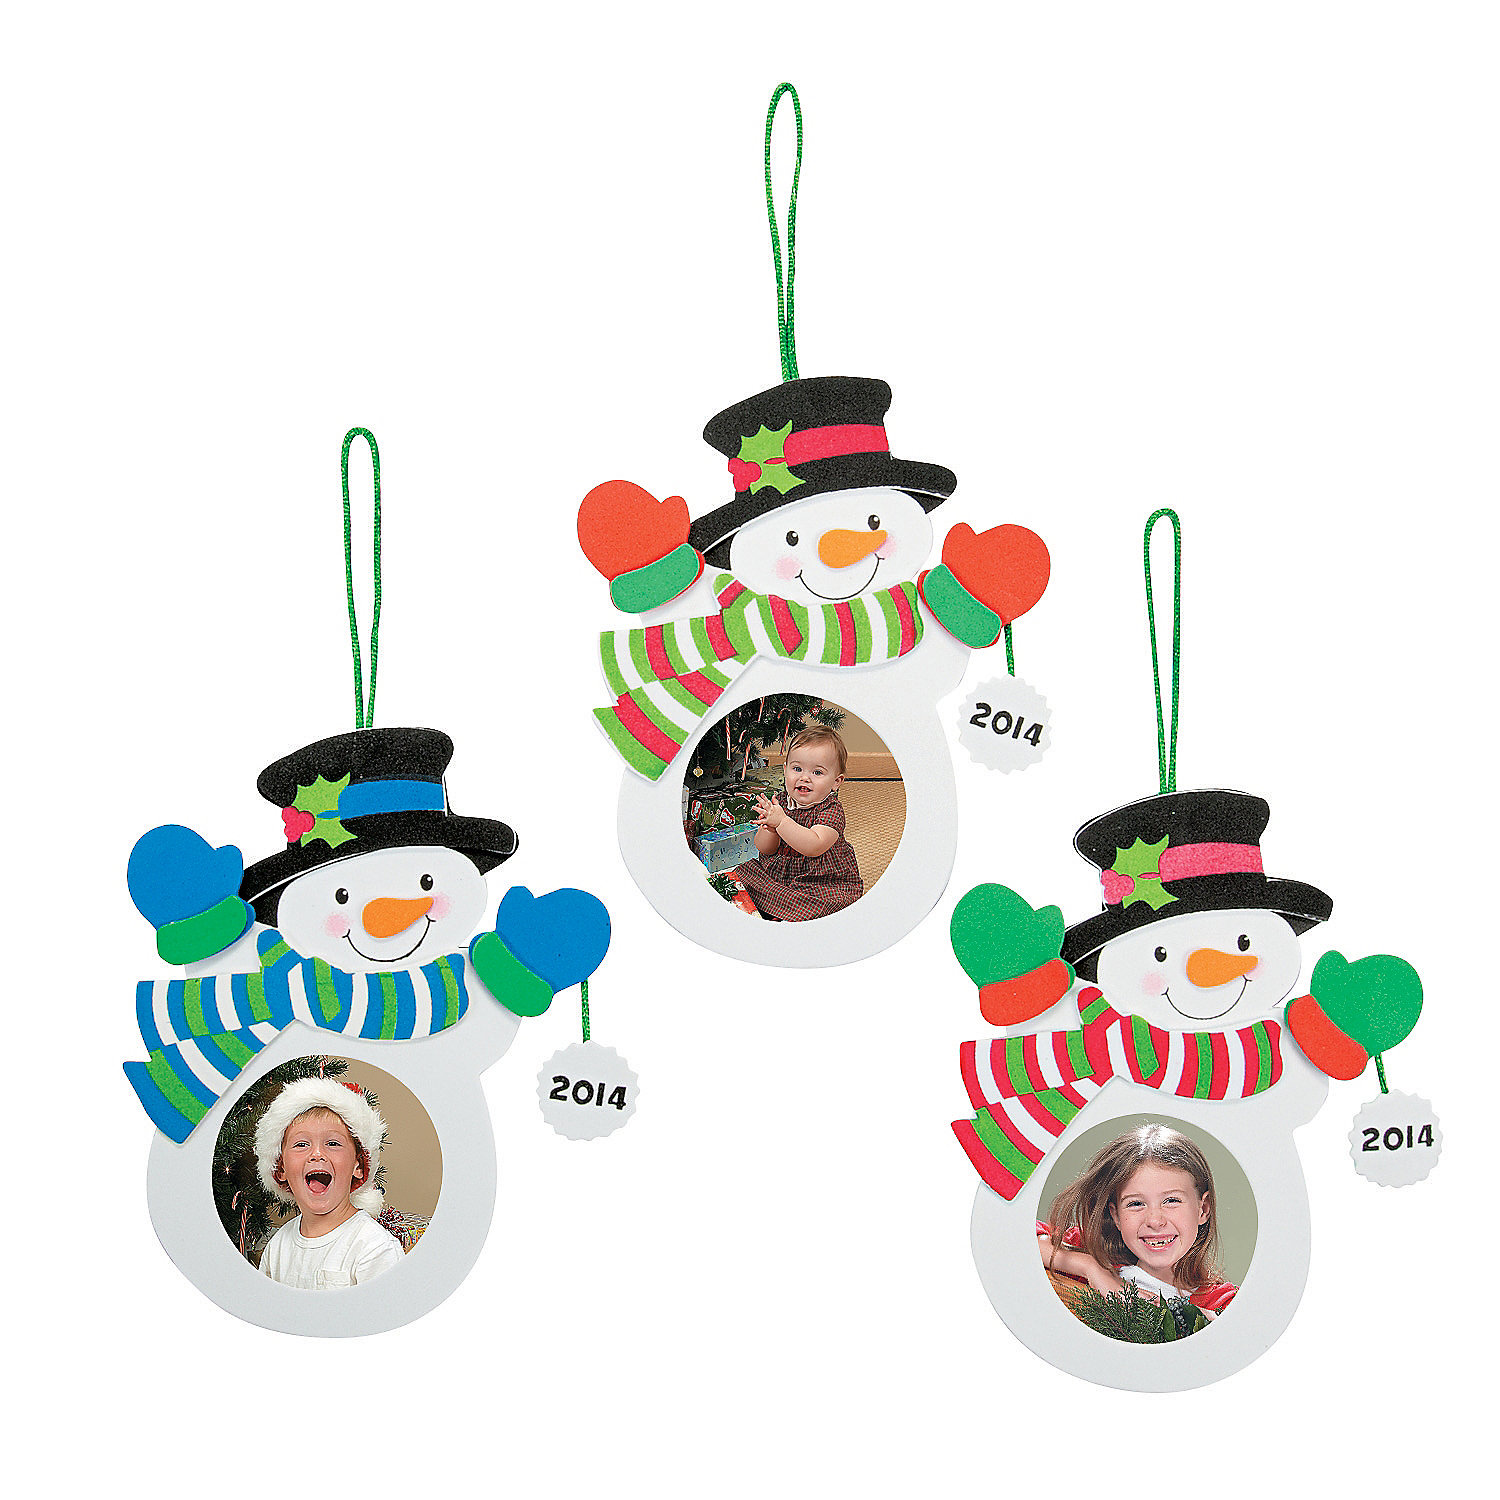 2014 2015 snowman picture frame ornament craft kit for Photo frame ornament craft